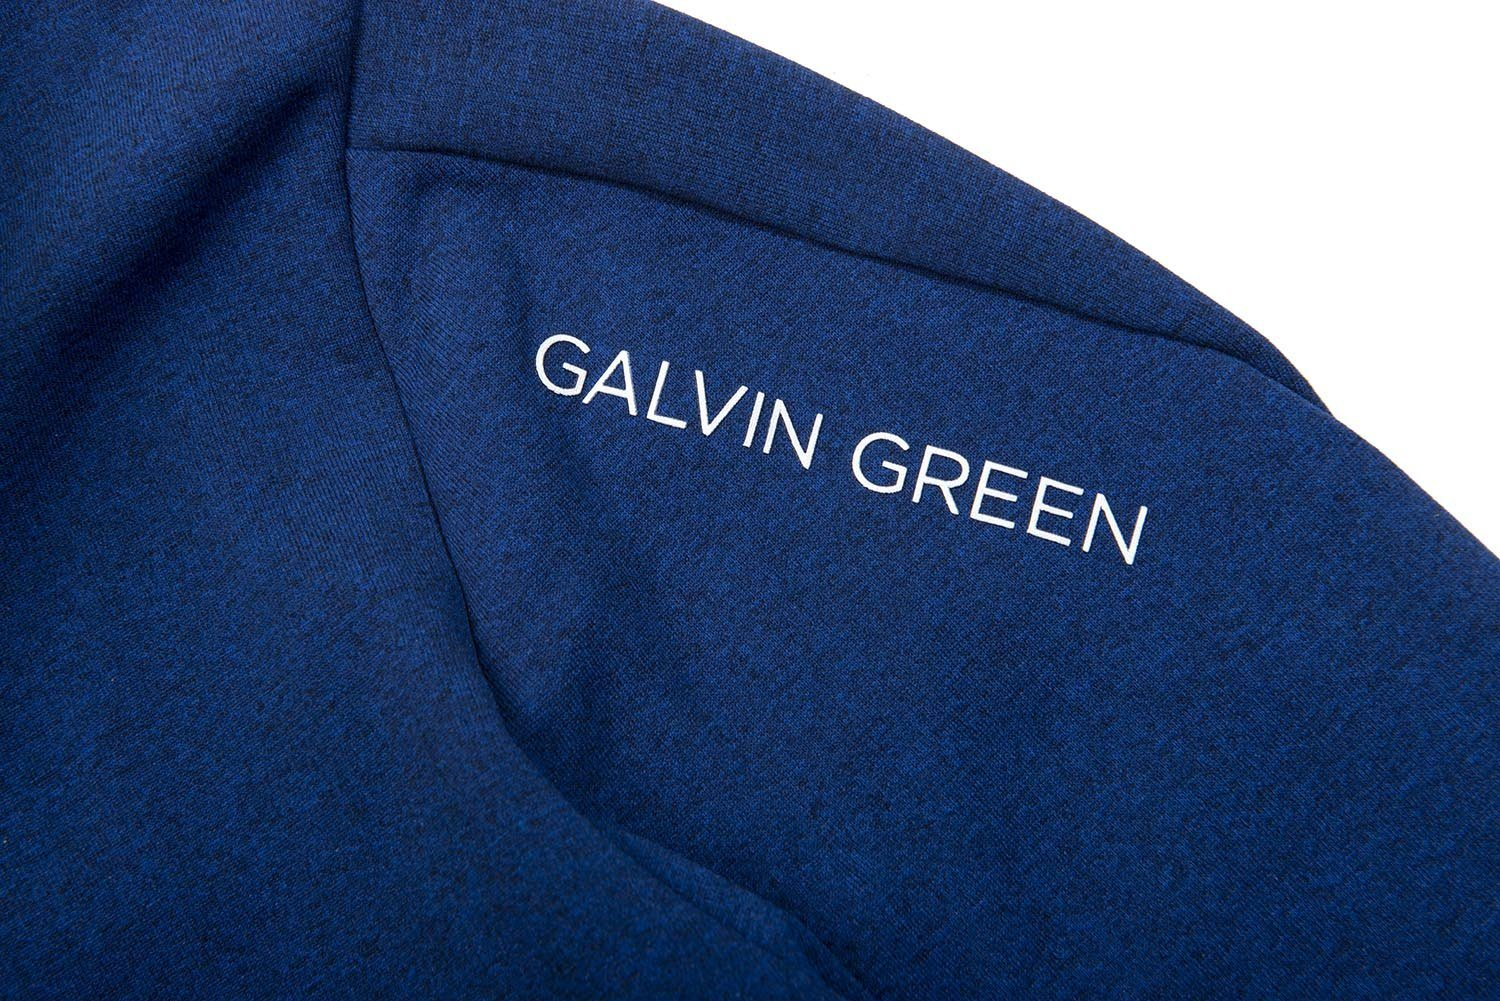 Galvin Green Denny Jacket Insula in Blue